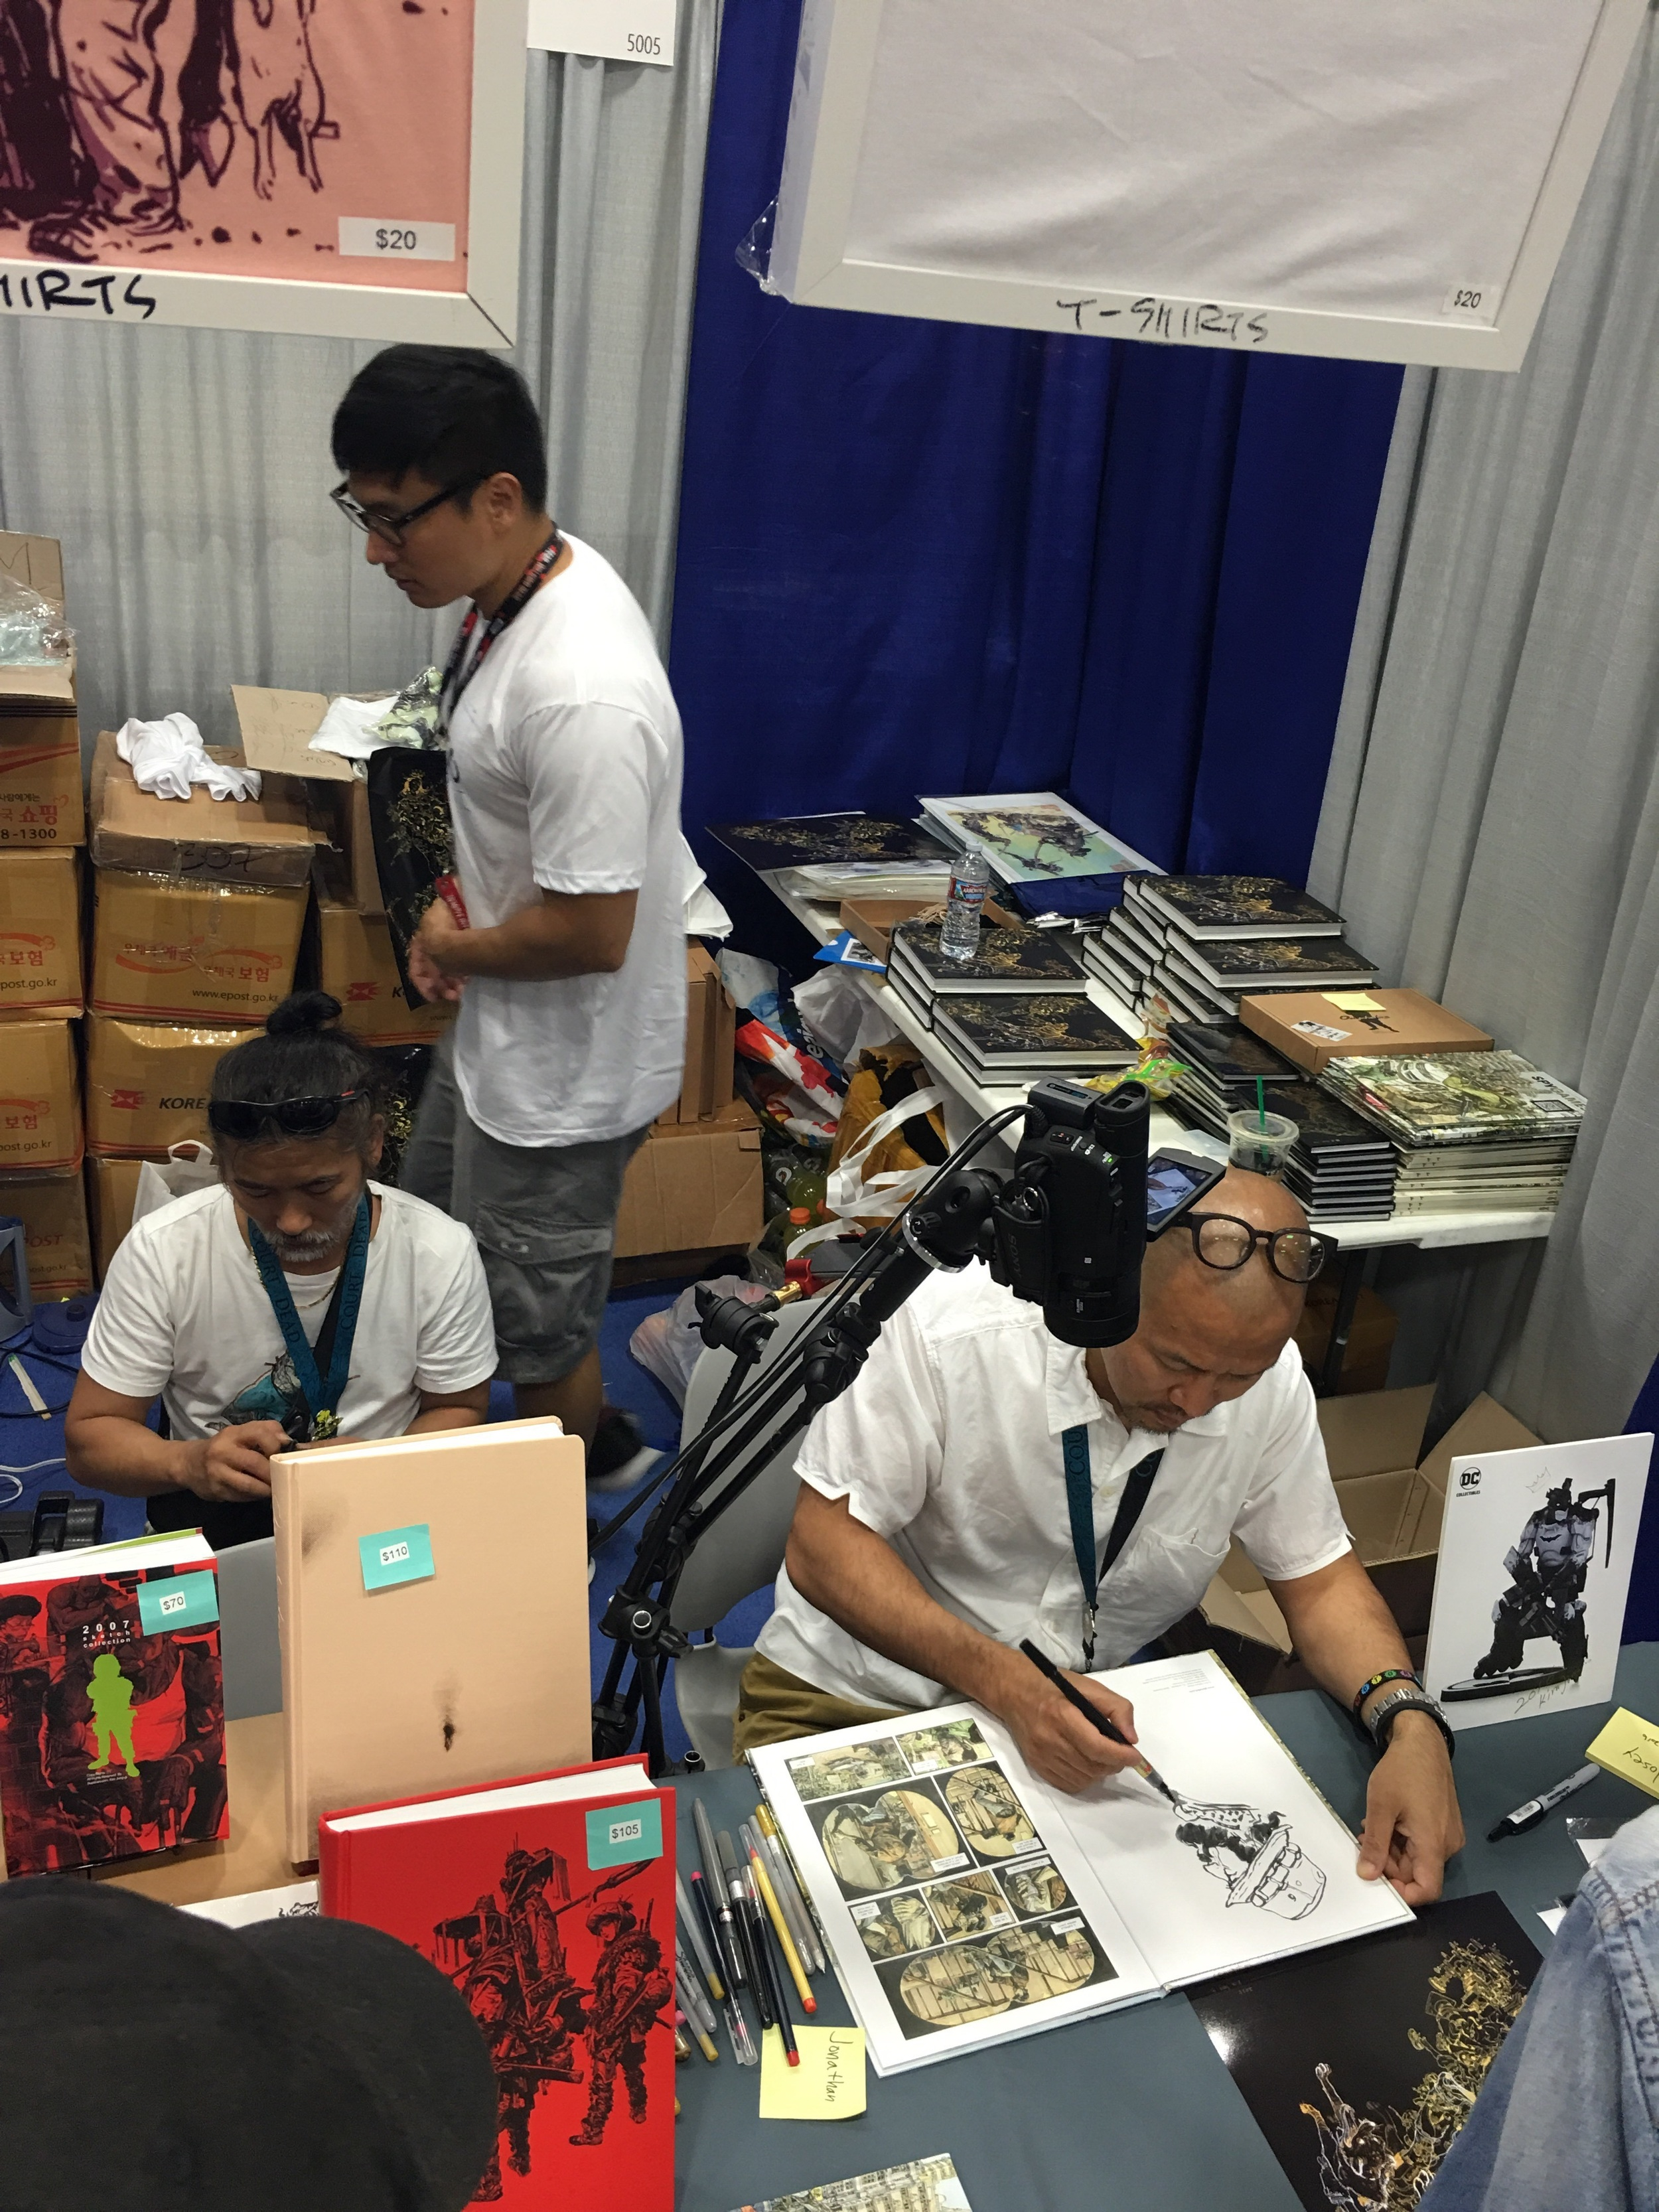 Kim Jung Gi  Drawing a sketch in one of his art books at Booth